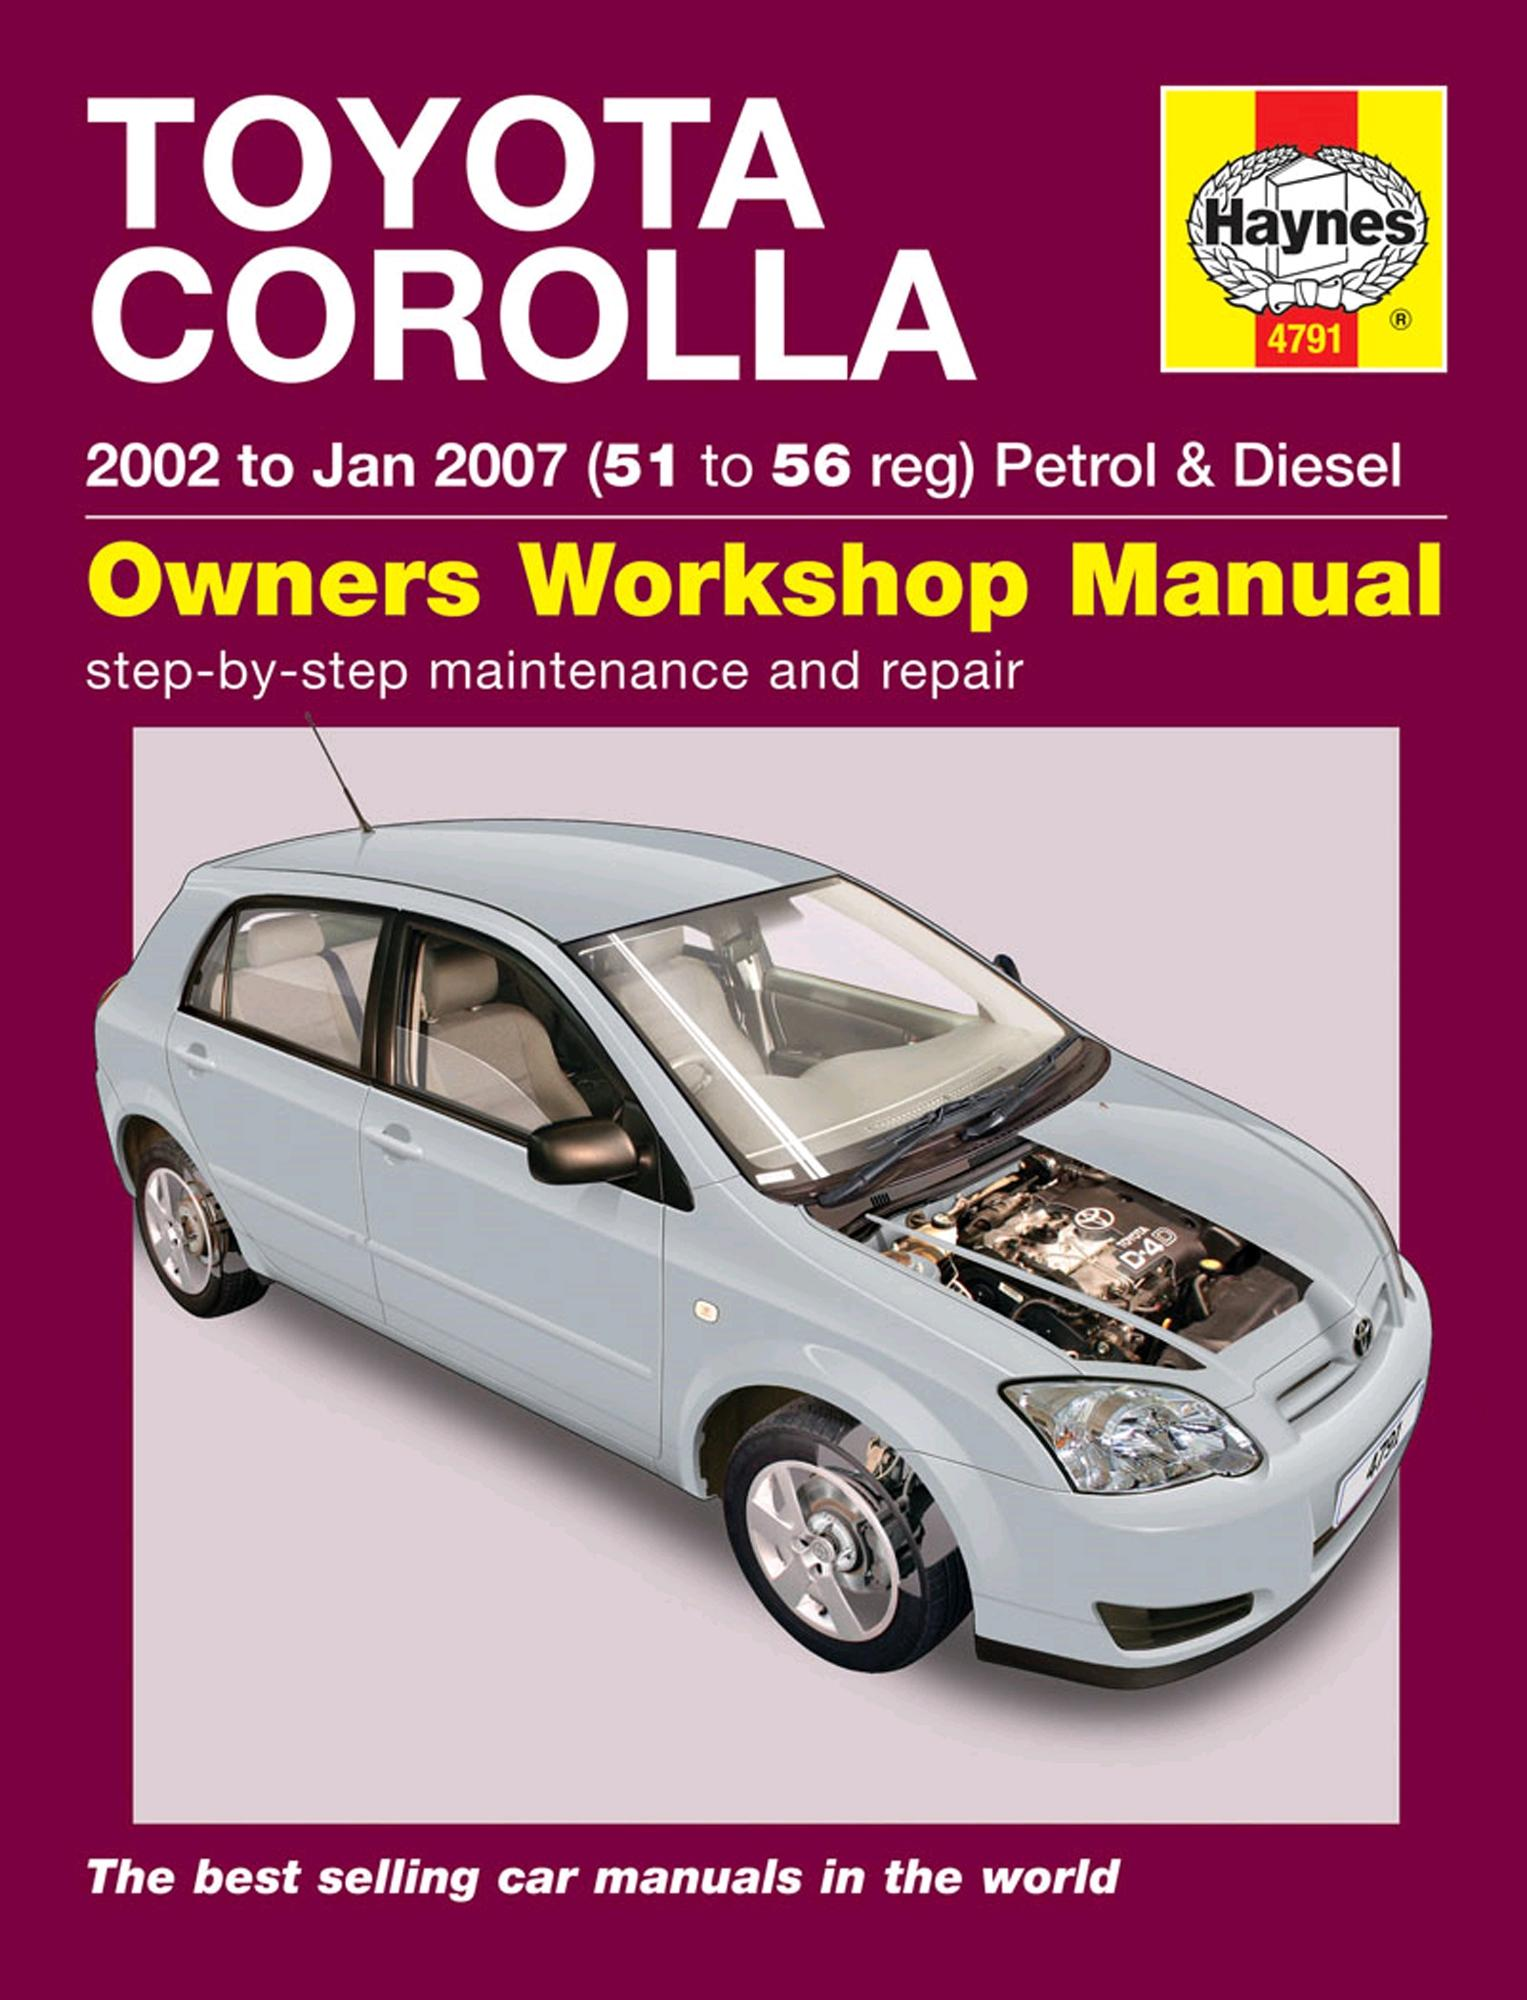 Toyota Corolla Repair Manual: Overhaul